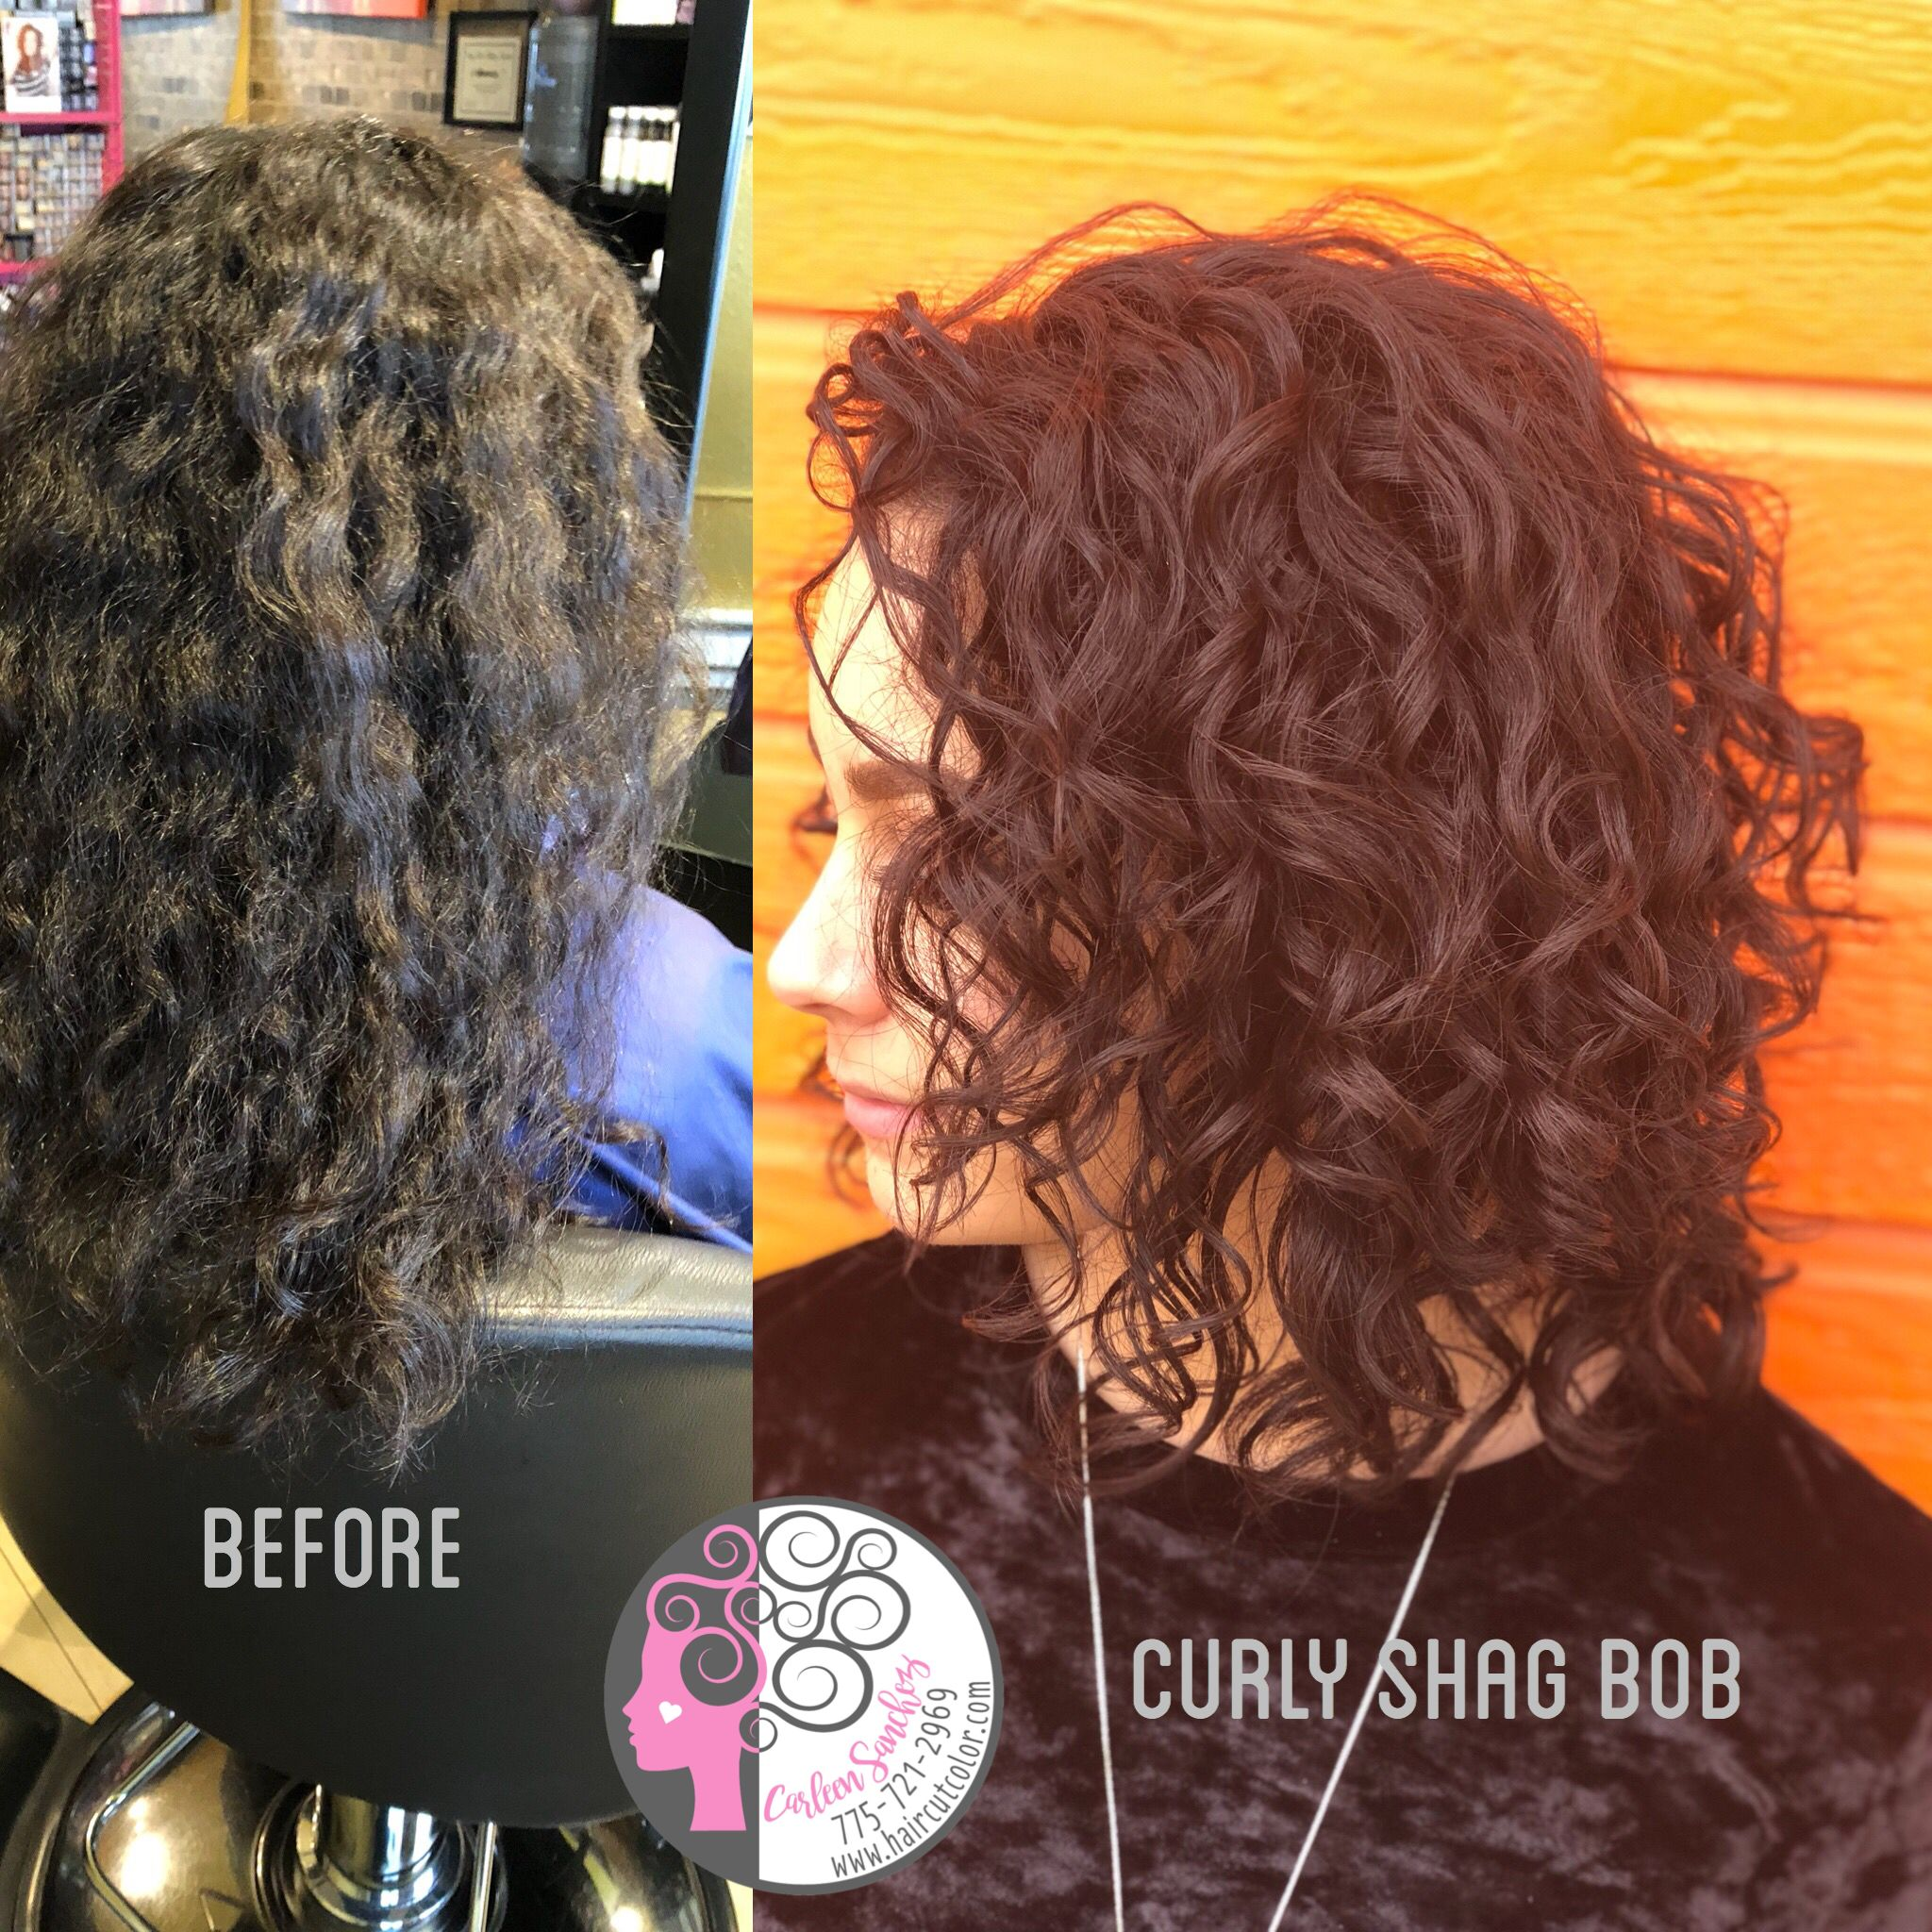 Naturally Curly Shag Bob Haircut By Carleen Sanchez Check Out Www Haircutcolor Com For Ton Curly Hair Styles Naturally Medium Curly Haircuts Curly Hair Styles